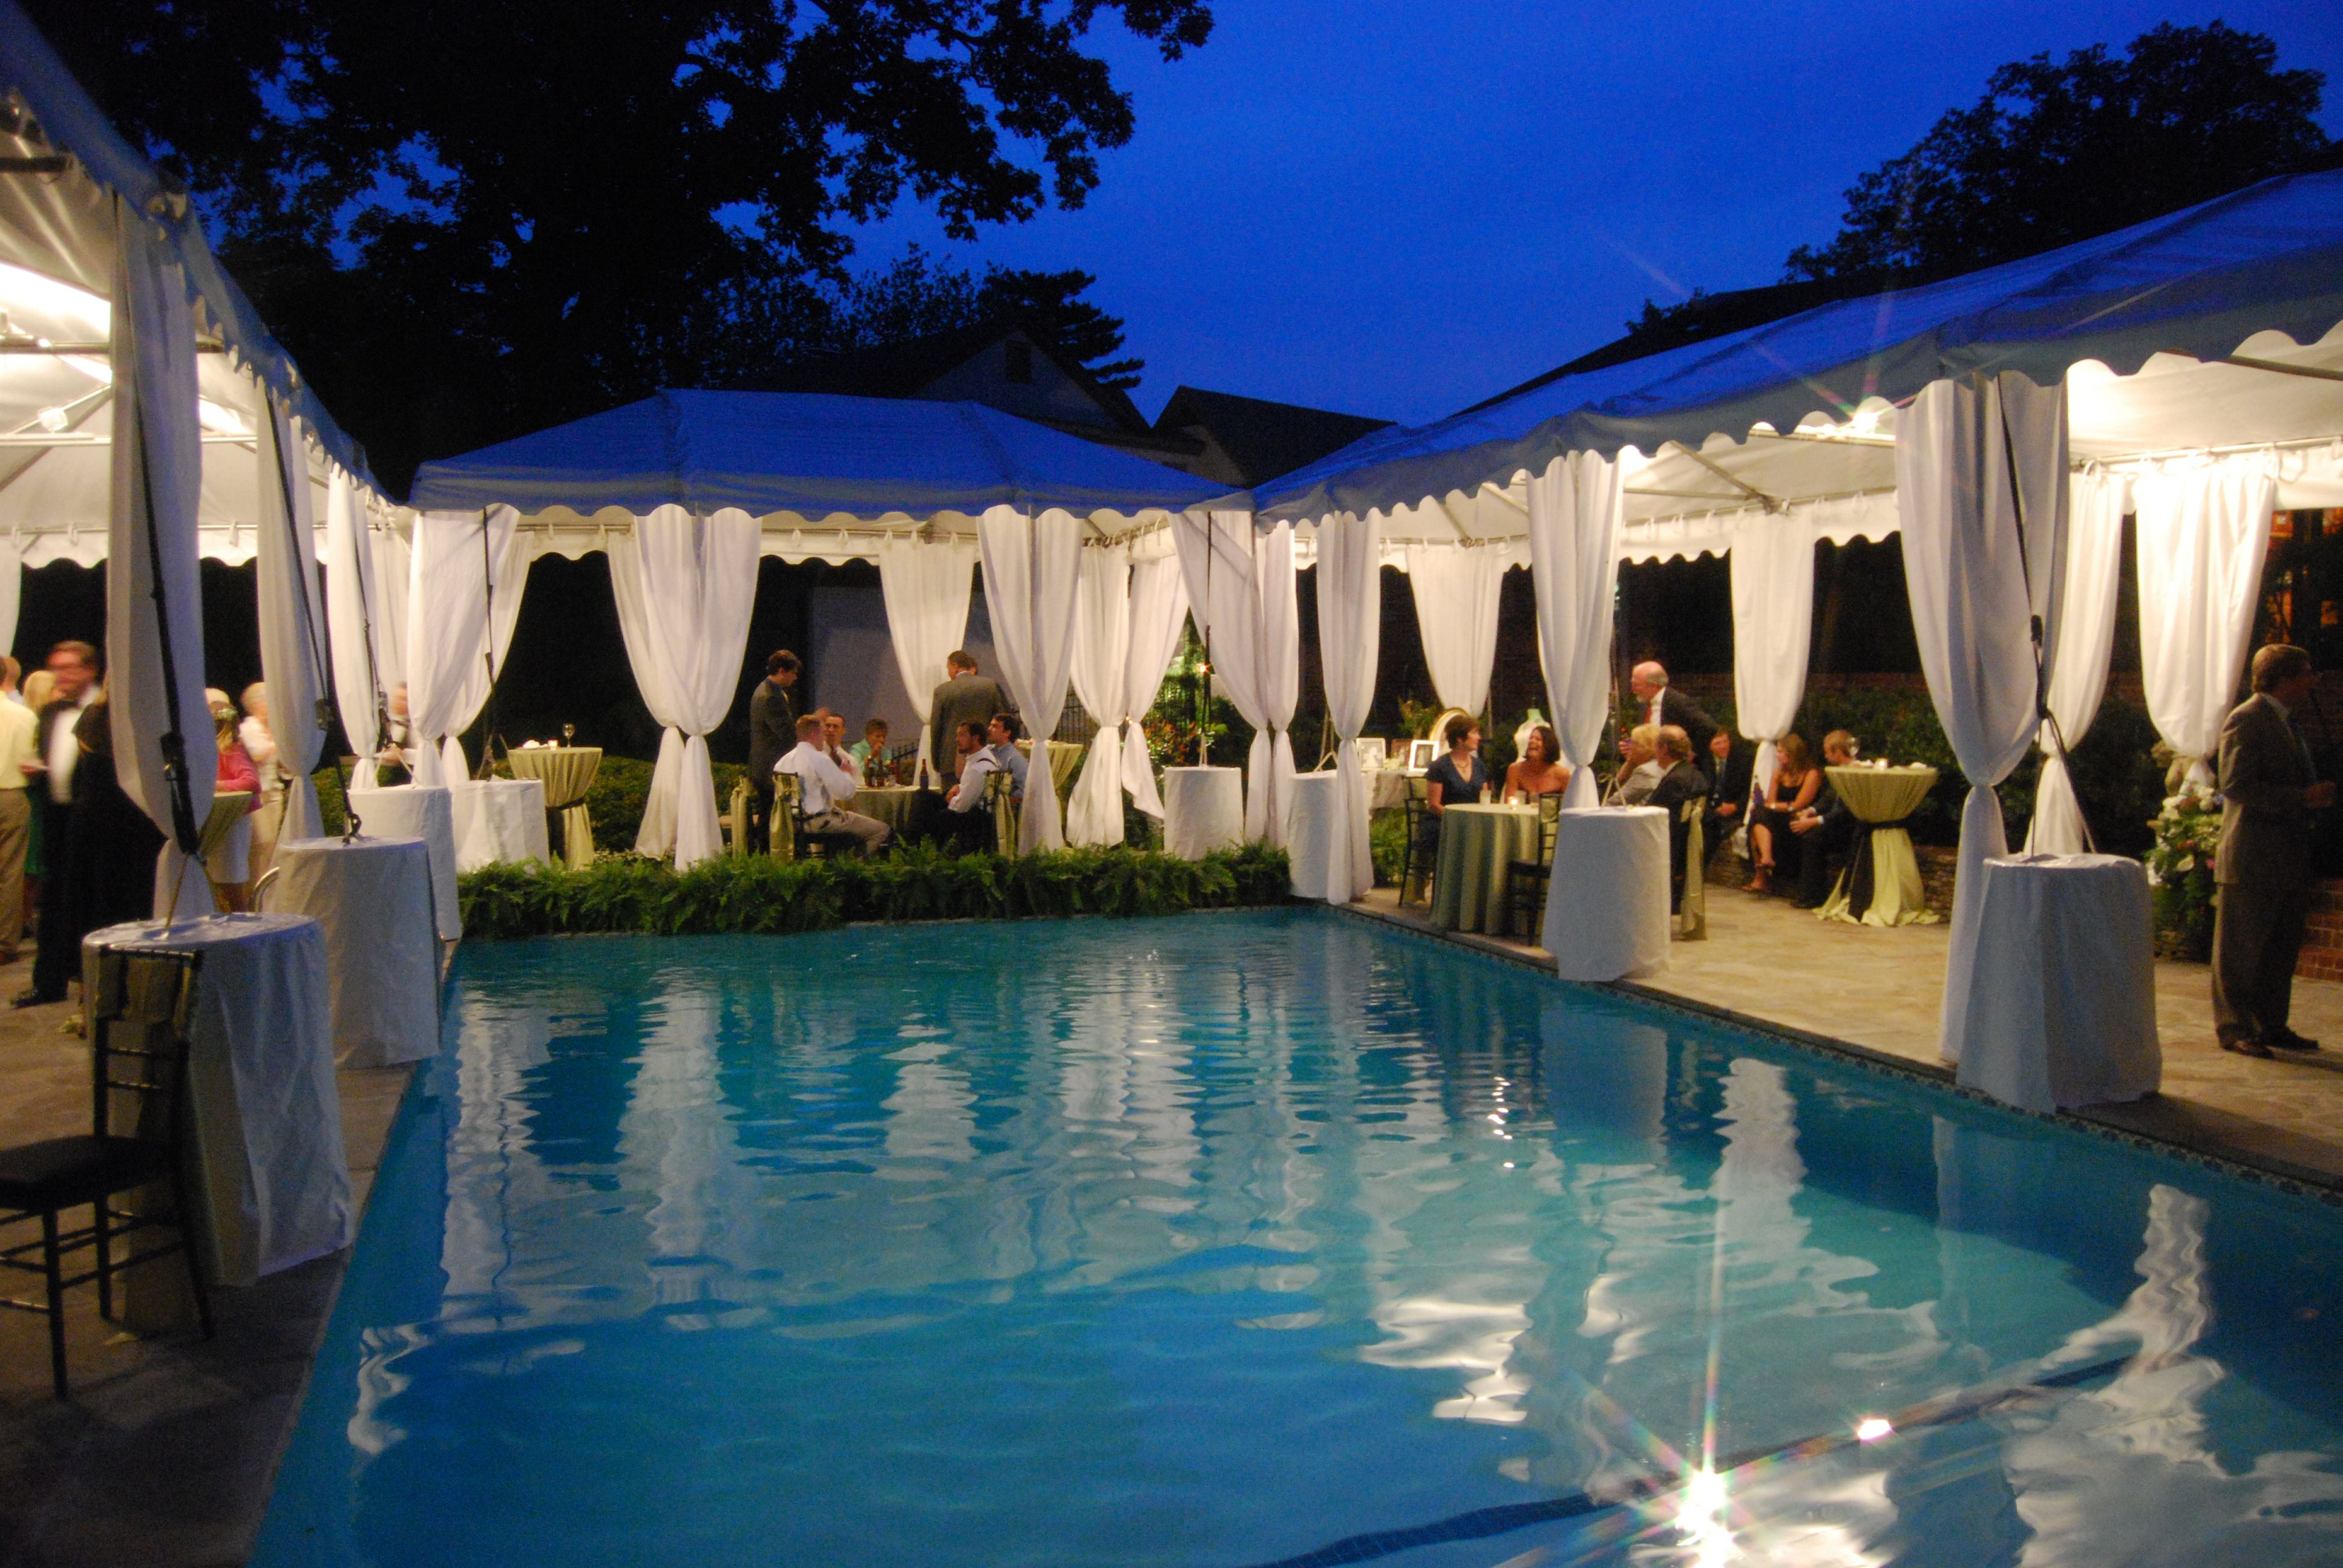 49+ Pool party wedding decorations ideas in 2021